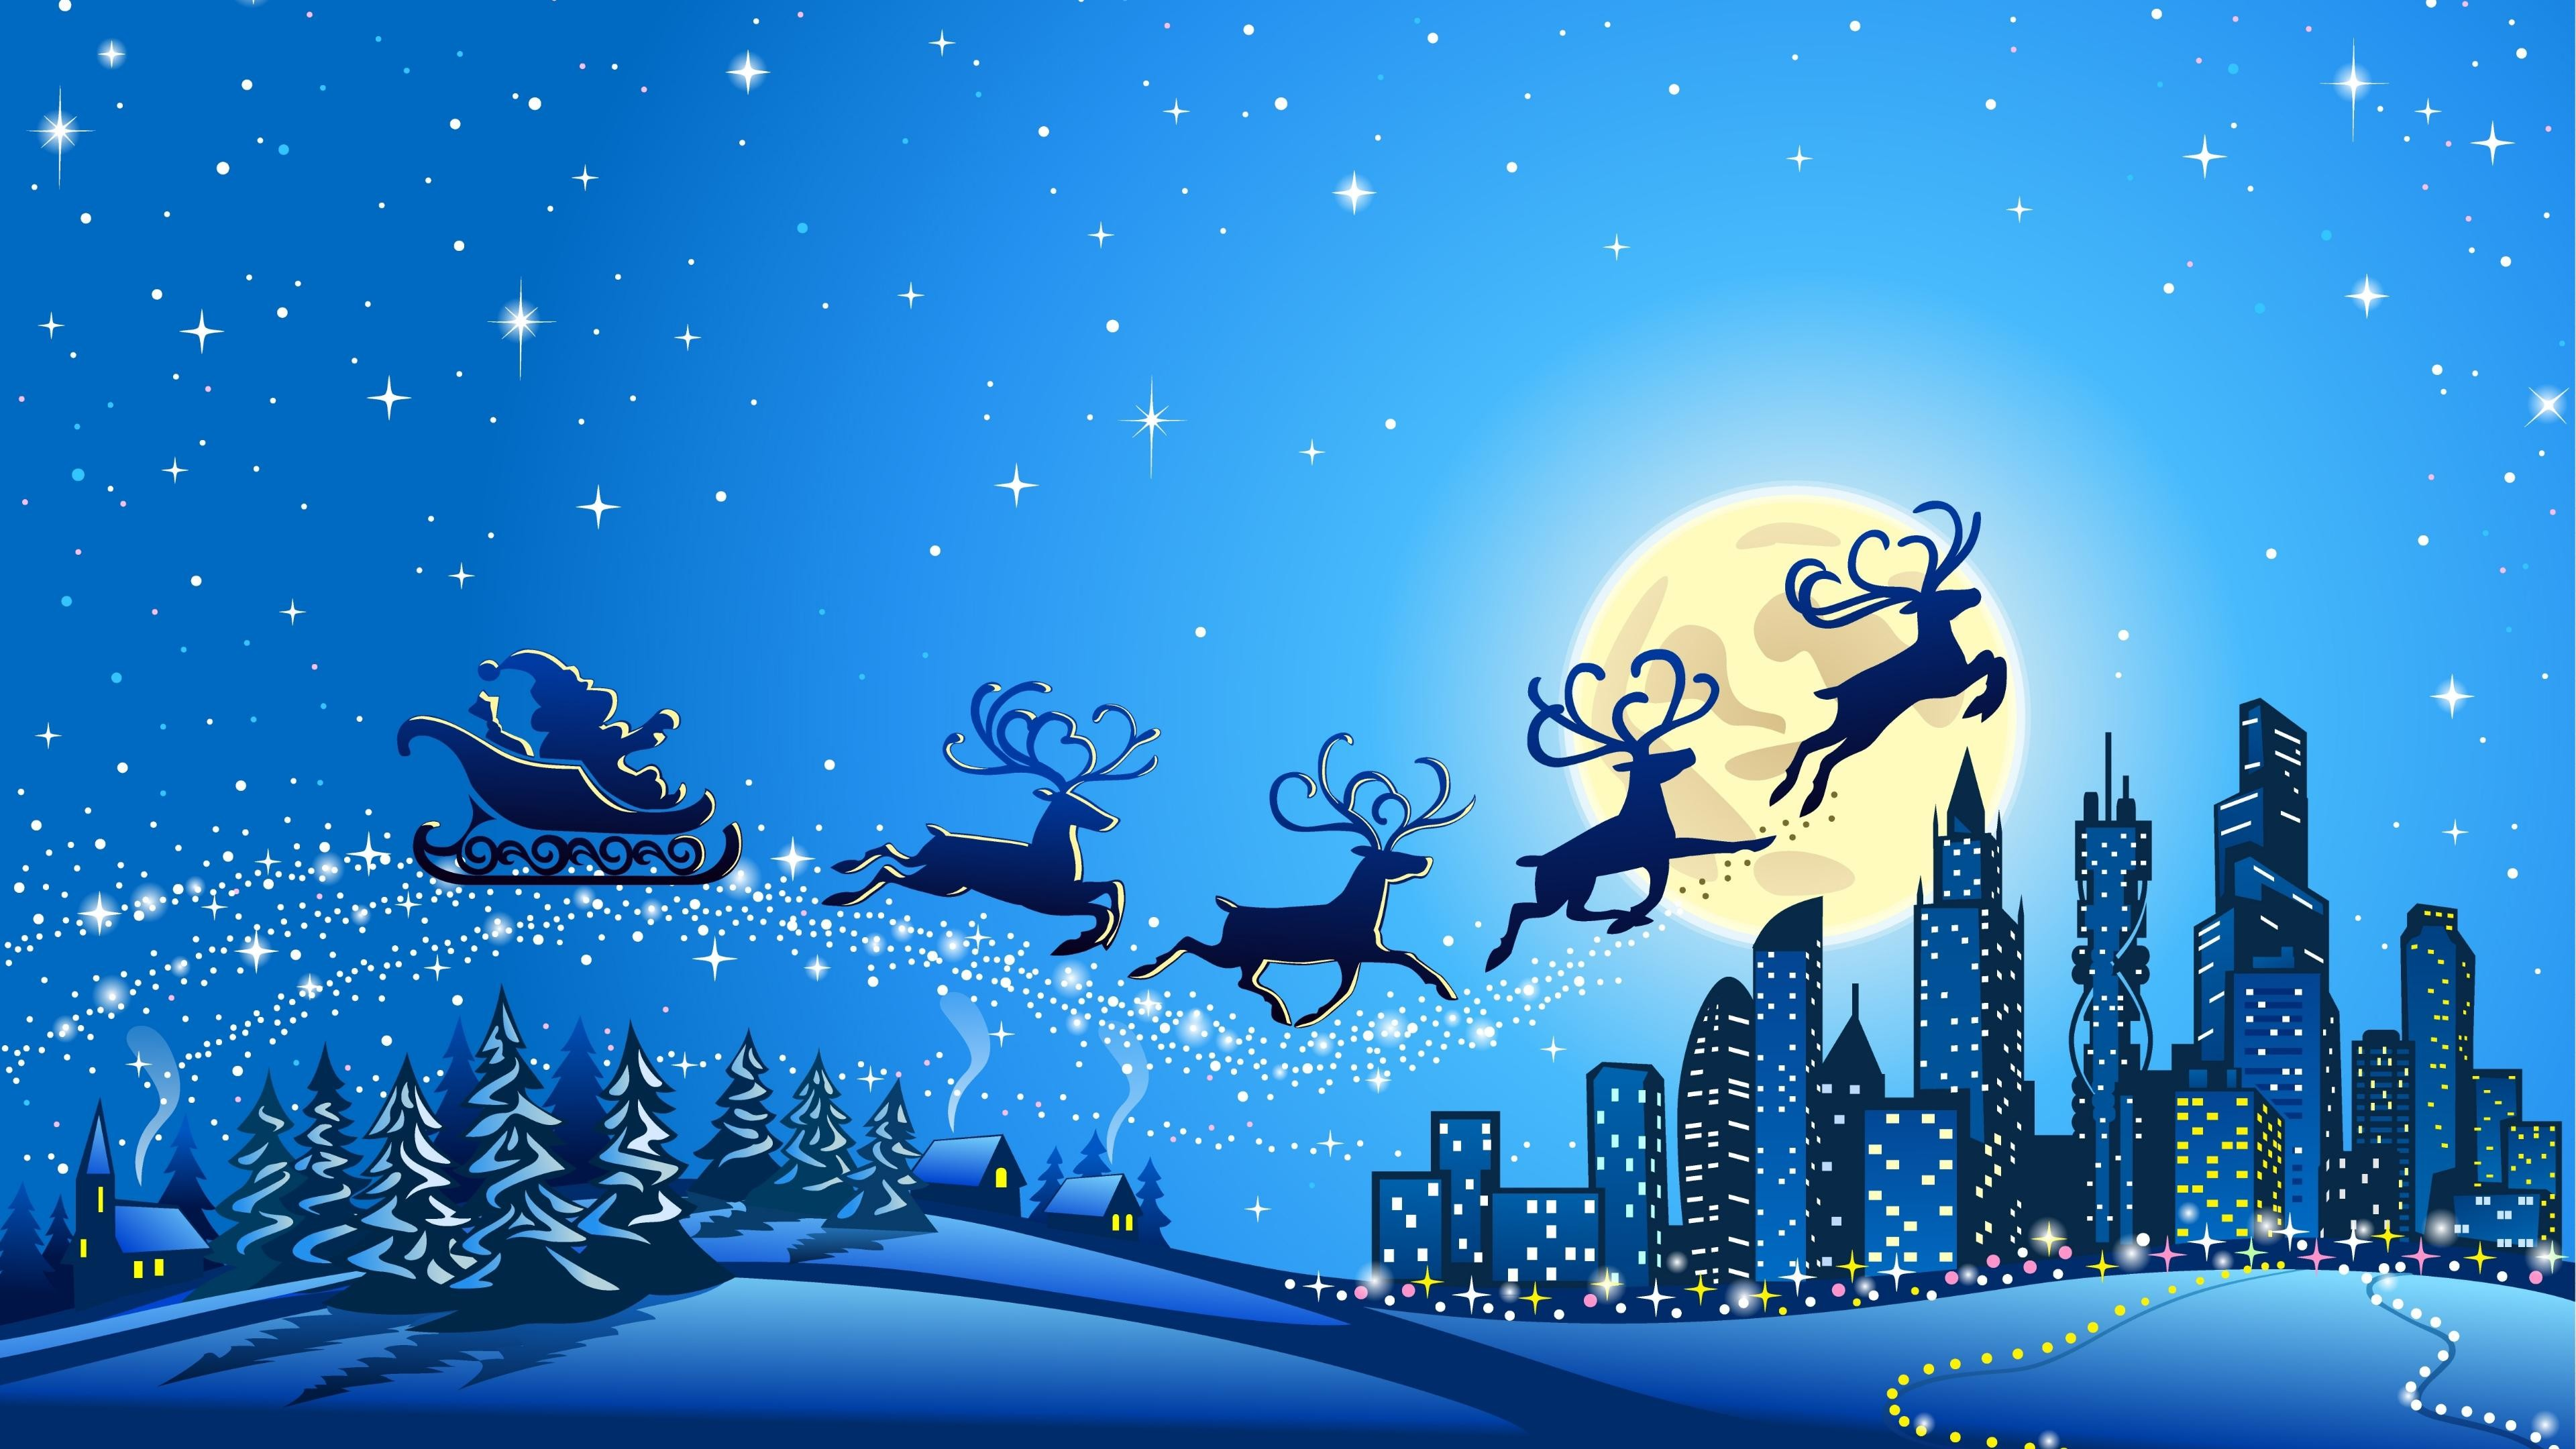 3840x2160 Cute Merry Christmas background Full HD 1080p Wallpapers | PIXHOME